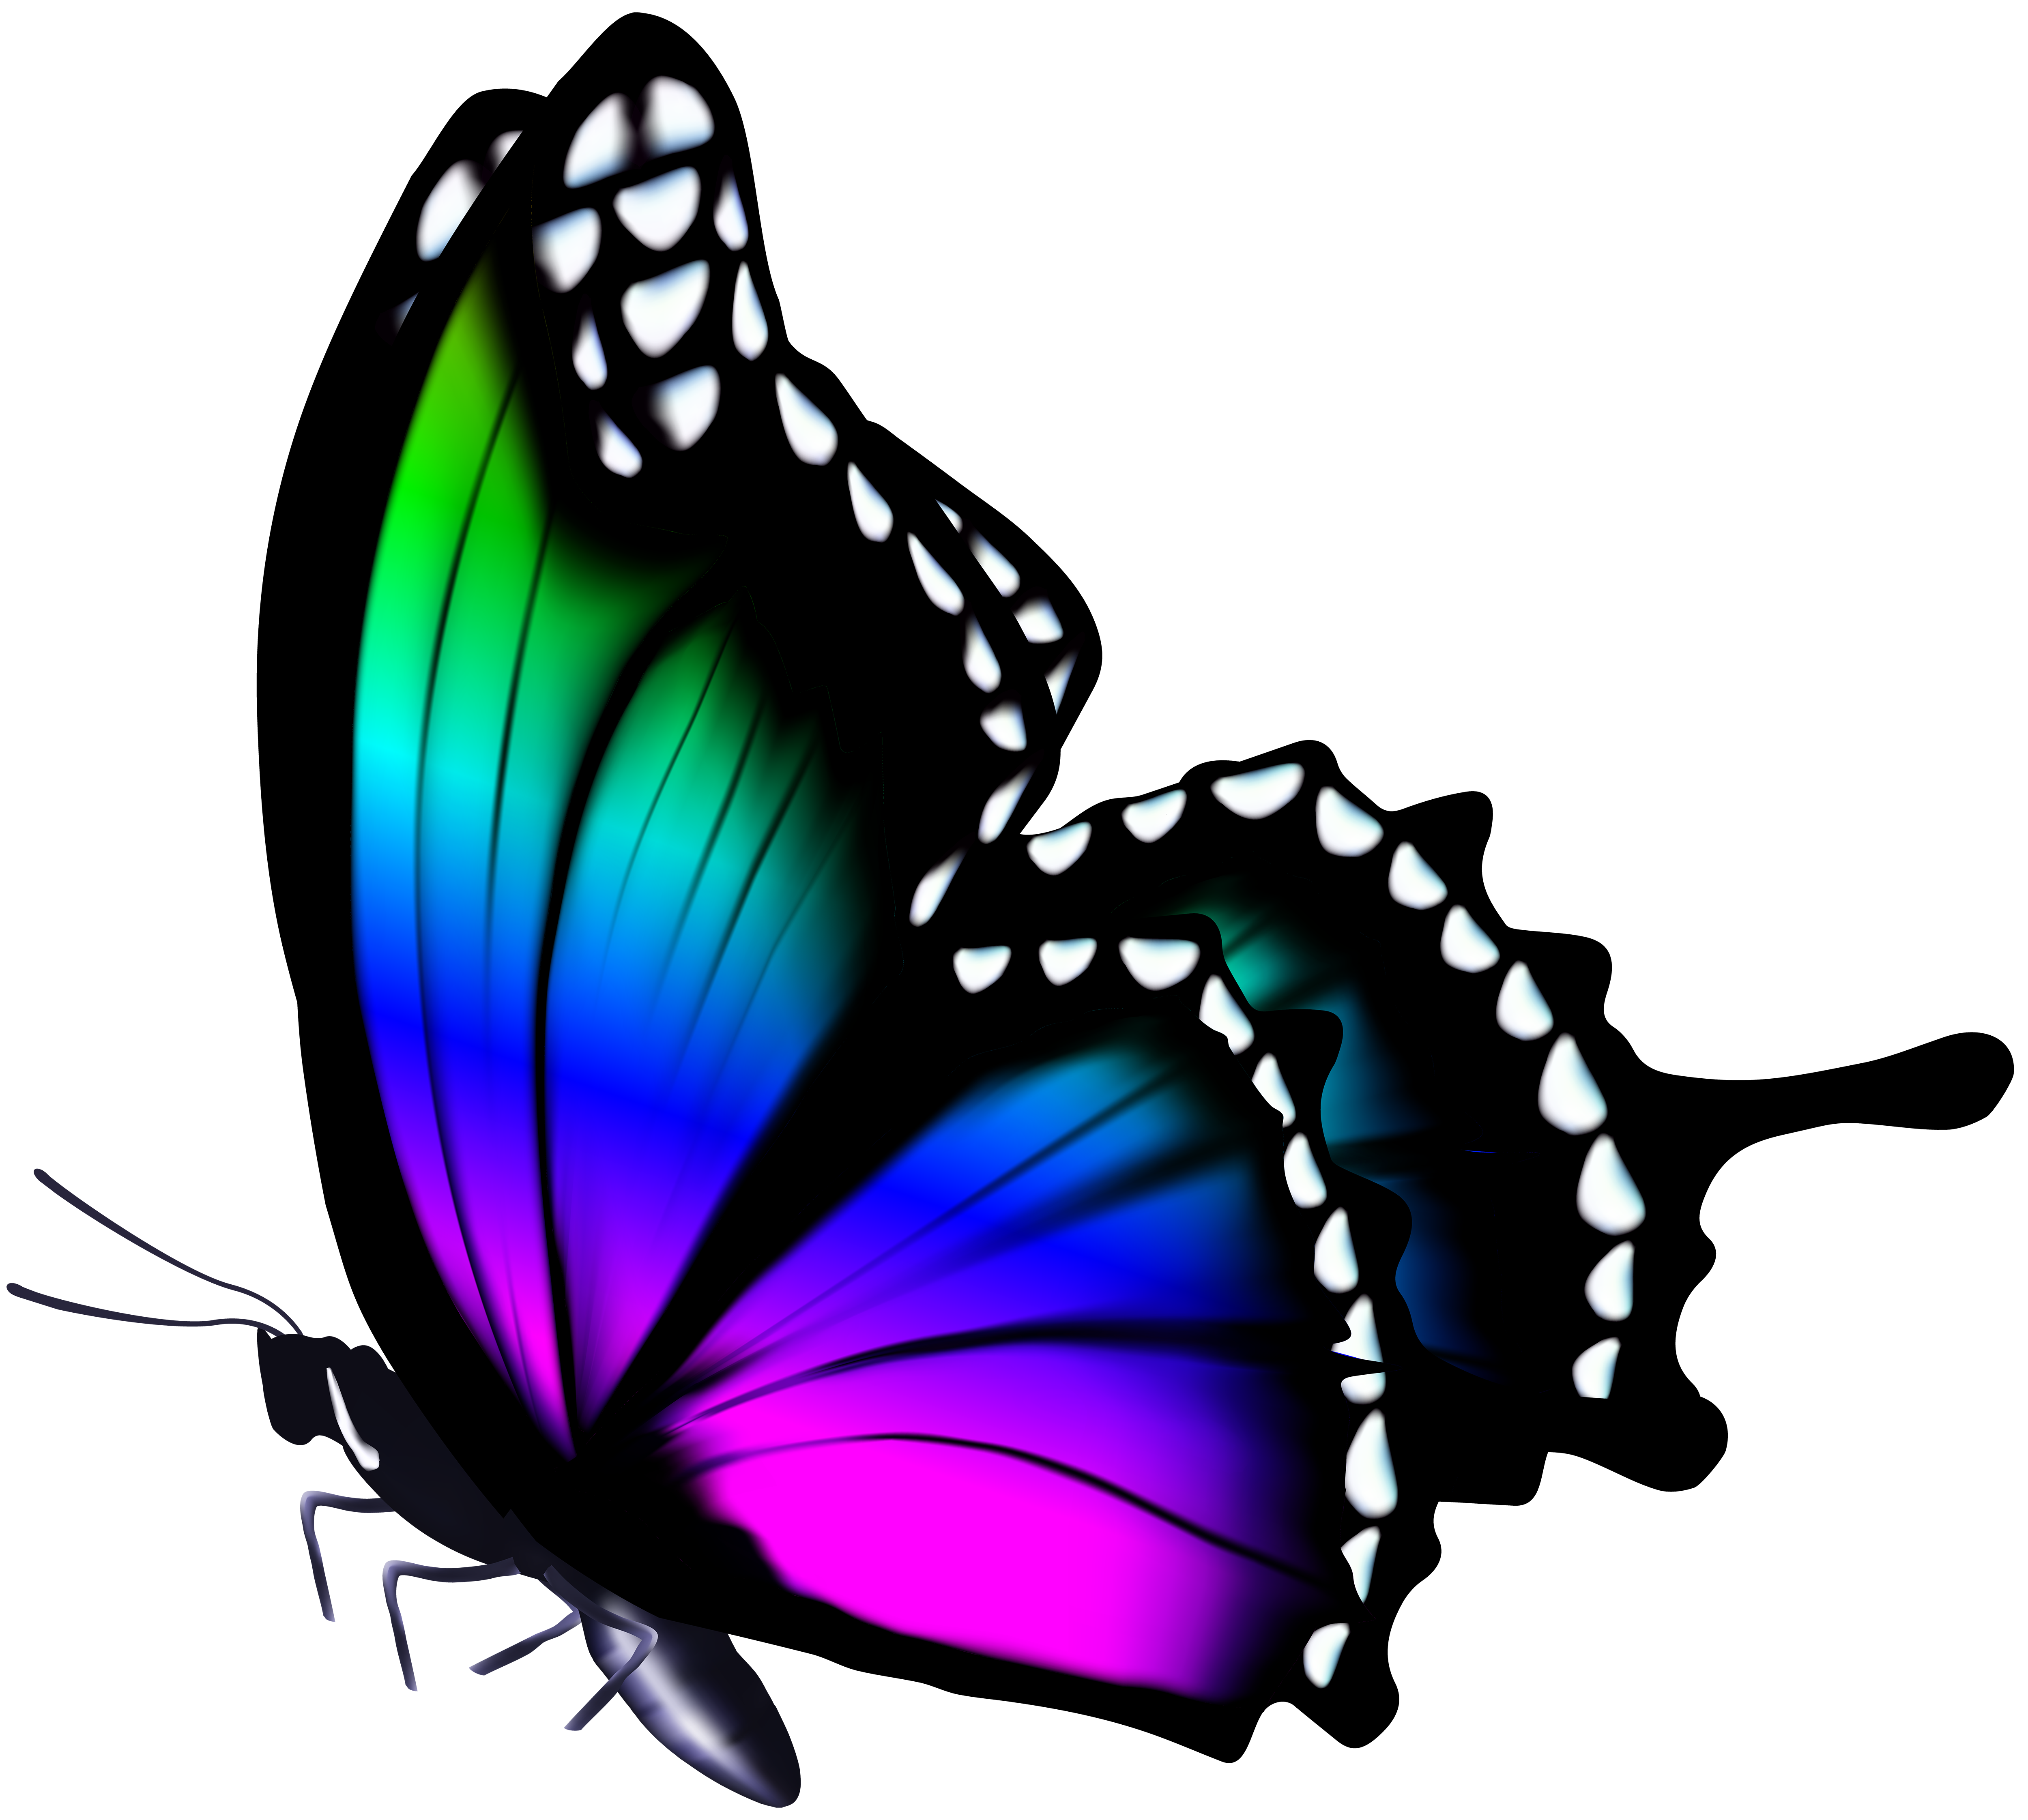 5000x4488 Colorful Butterfly Png Clip Art Imageu200b Gallery Yopriceville